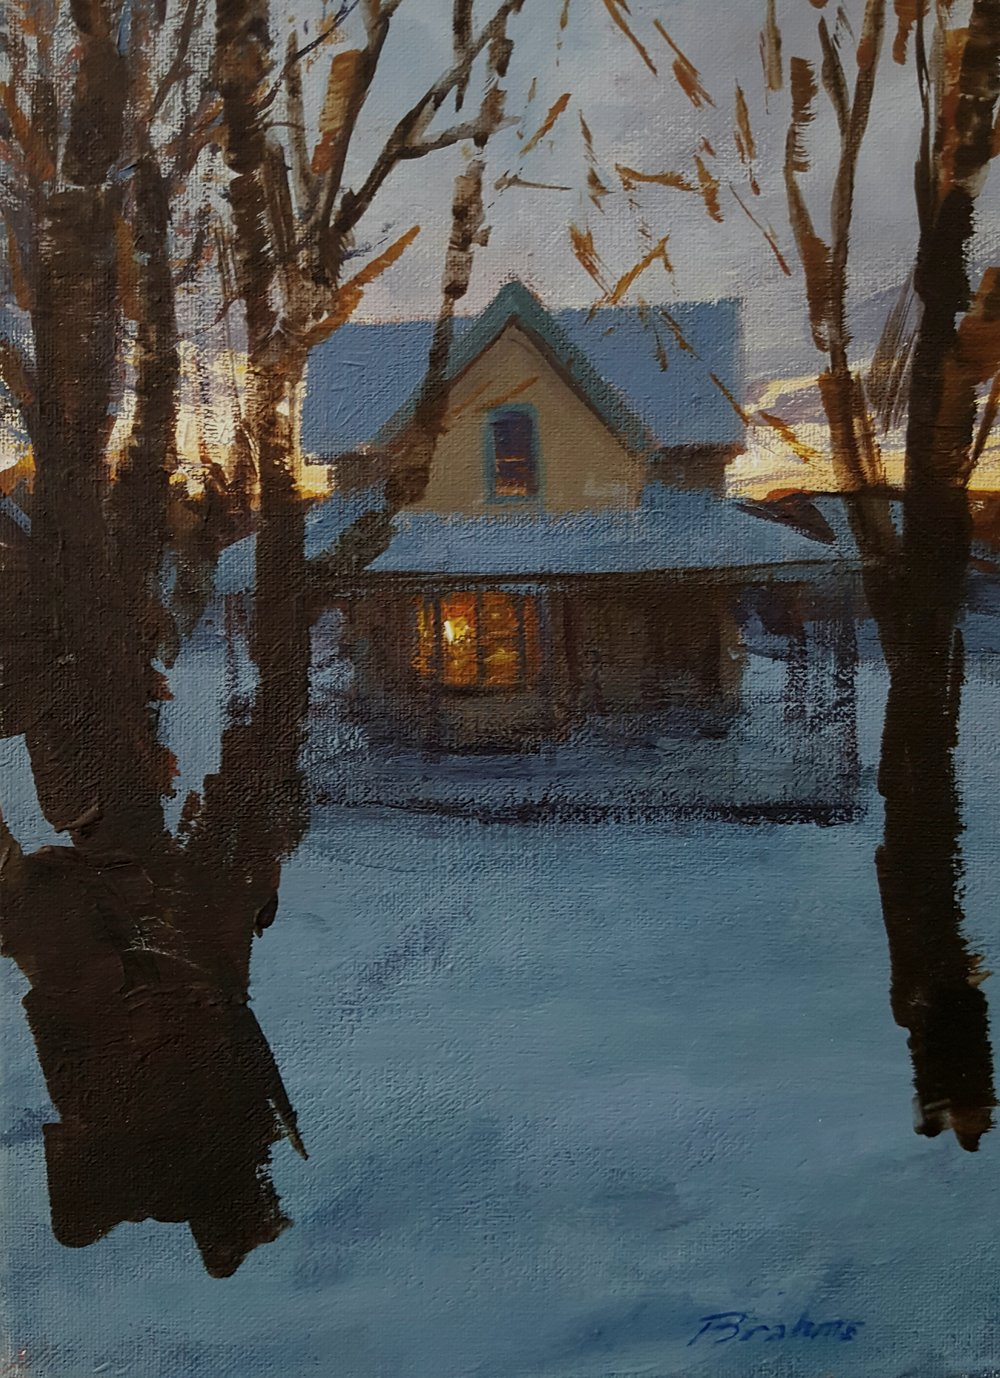 House at Sunset, Winter